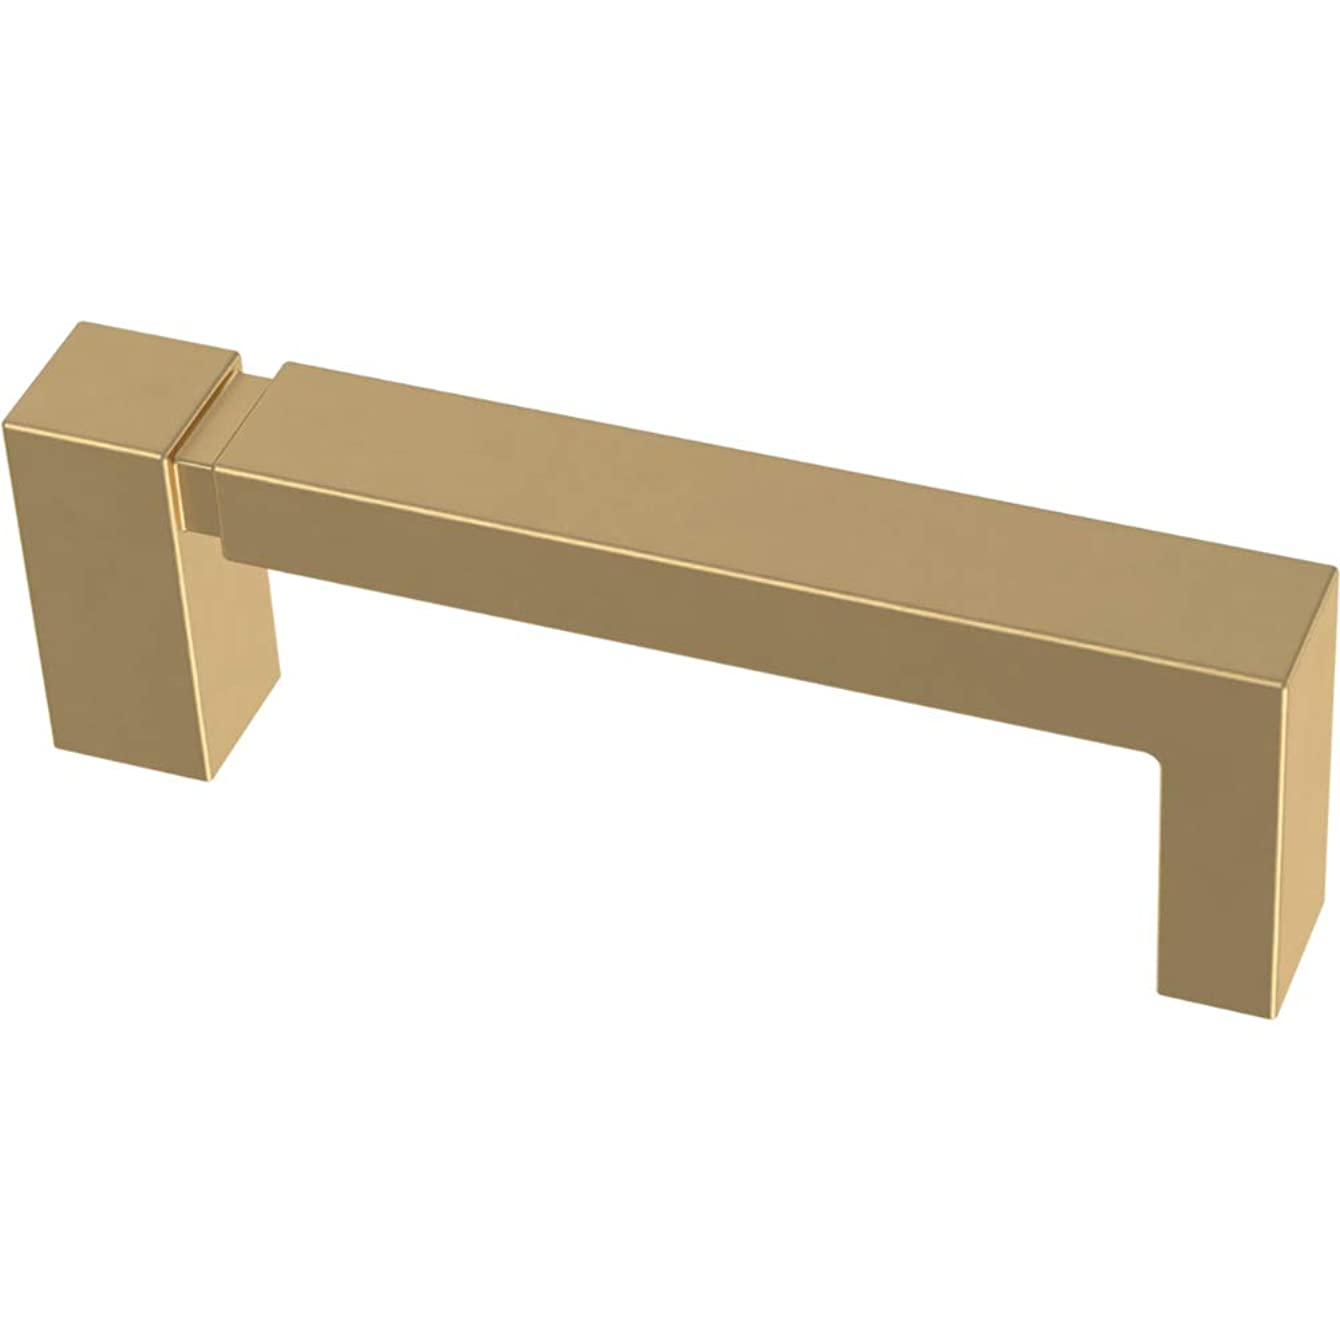 Franklin Brass P40822K-117-C Asymmetric Notched Kitchen or Furniture Cabinet Hardware Drawer Handle Pull, 3-Inch (76mm), Brushed Brass, 10-Pack